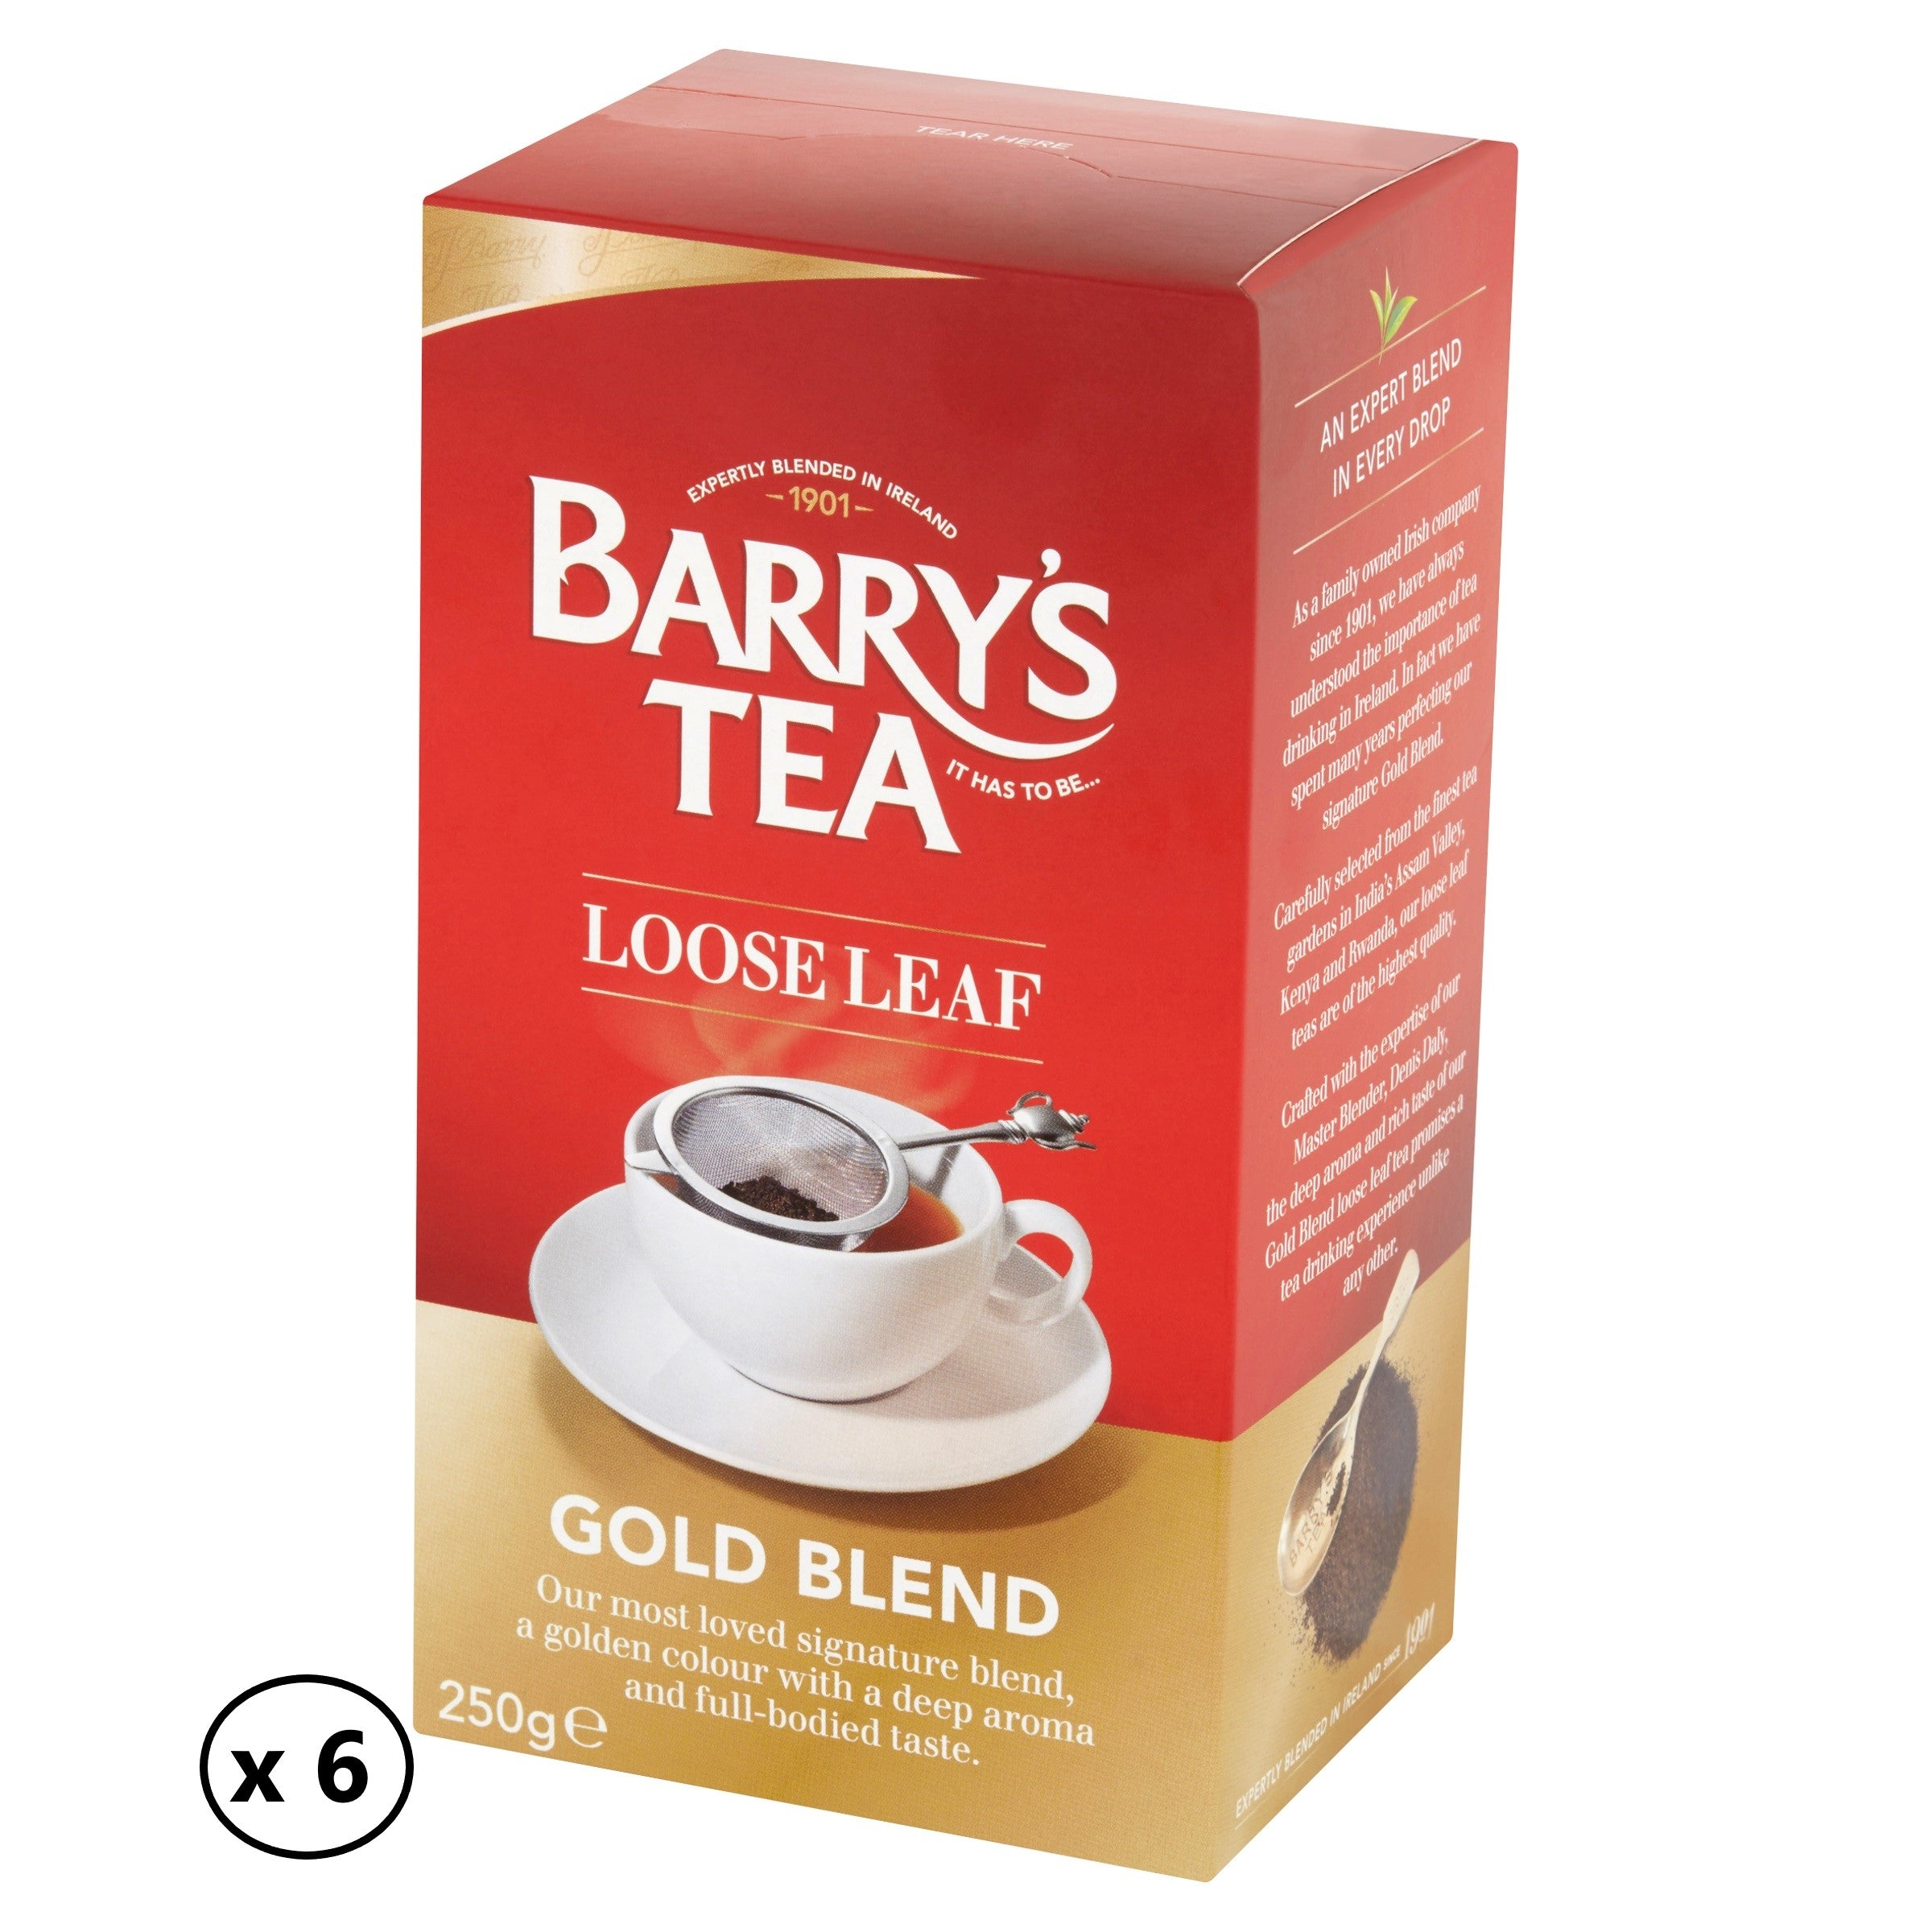 GOLD BLEND LOOSE LEAF TEA 250g (6 PACK)